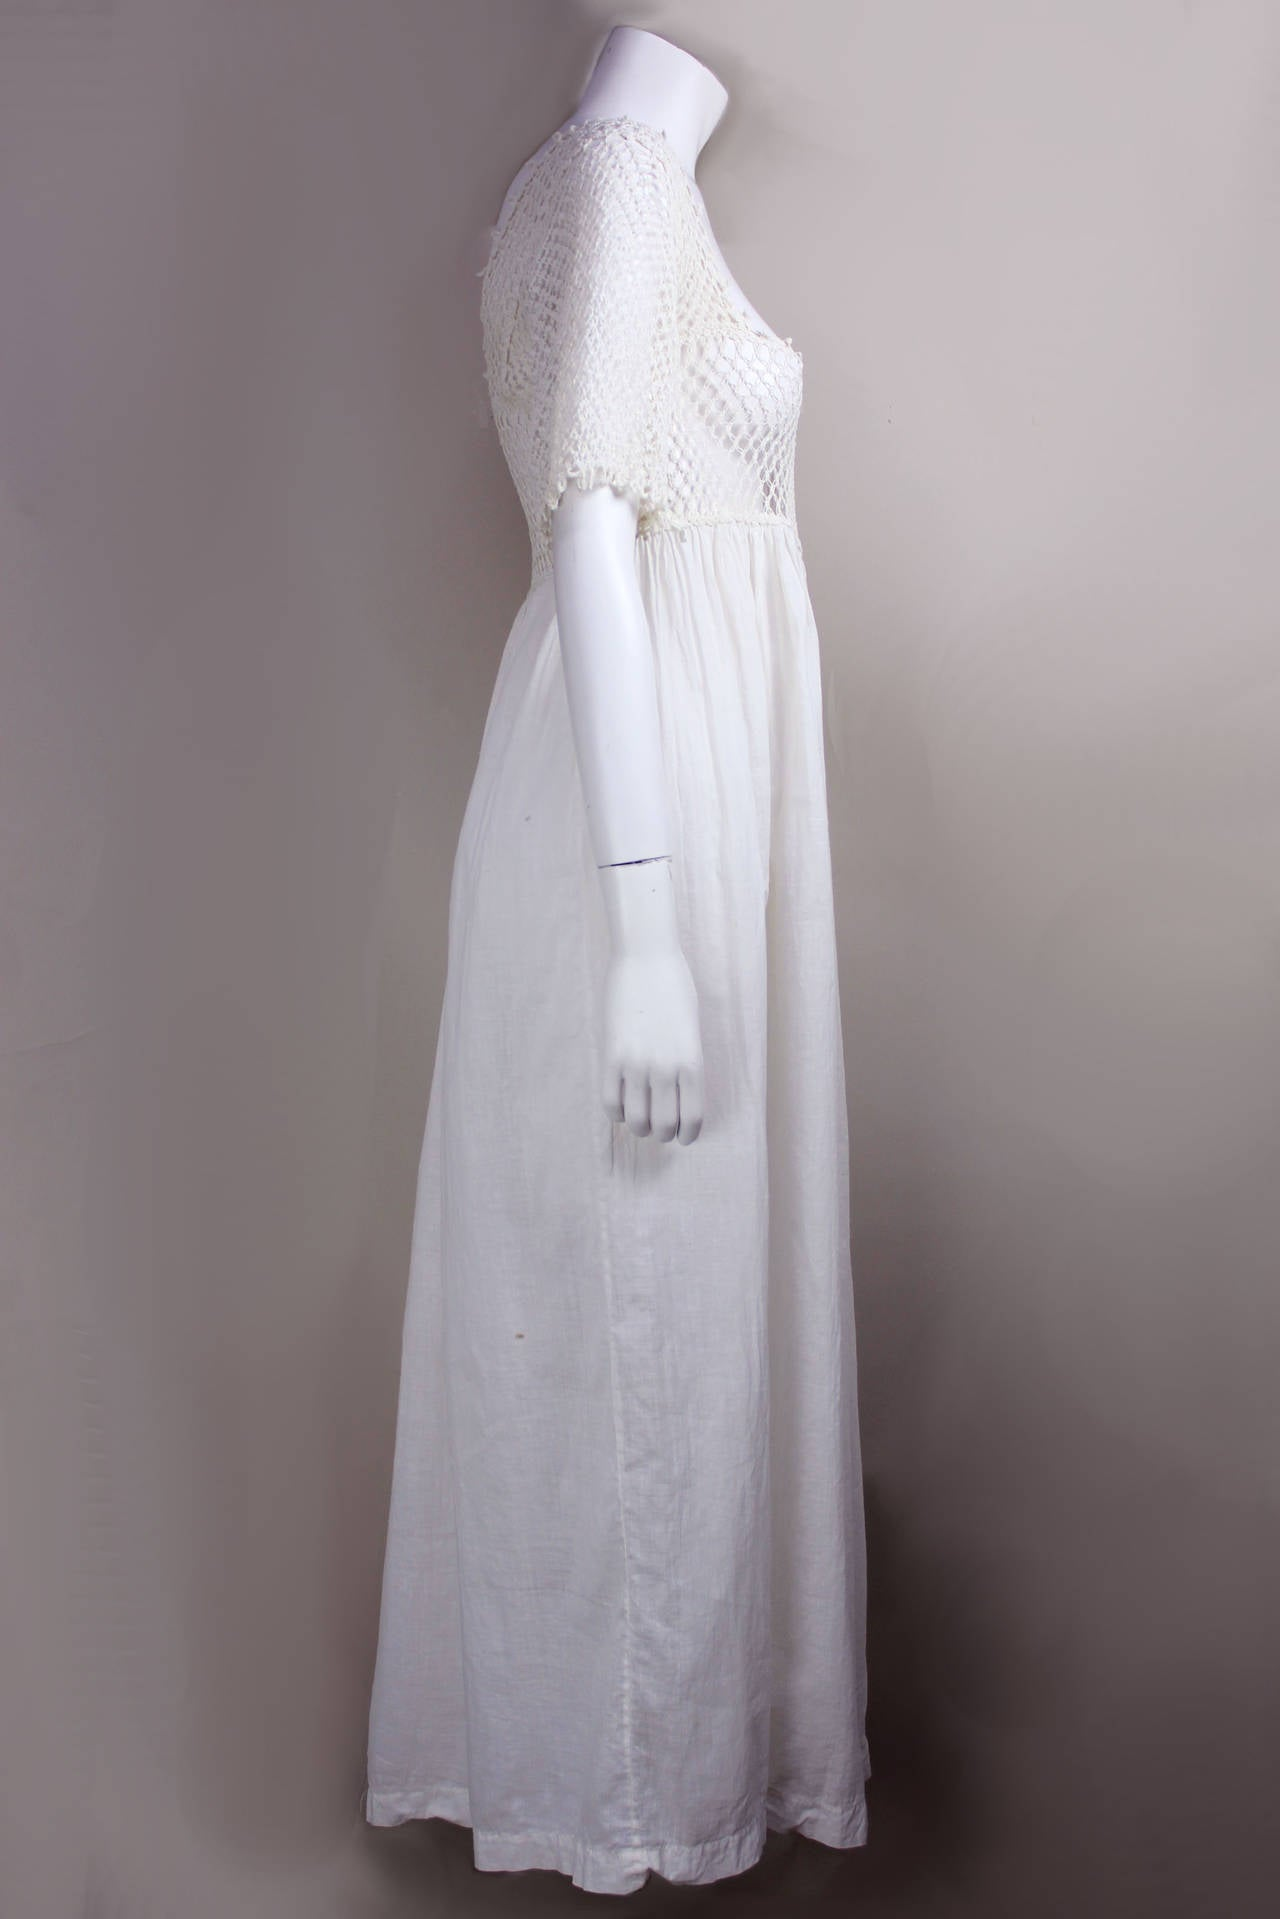 Unique and delicate, this piece dates to the Edwardian period (1901-1910). The skirt is made of a light crisp cotton and the scoop neck bodice of an intricate crochet. The airy quality of the gown can be attributed to the shift towards softer and